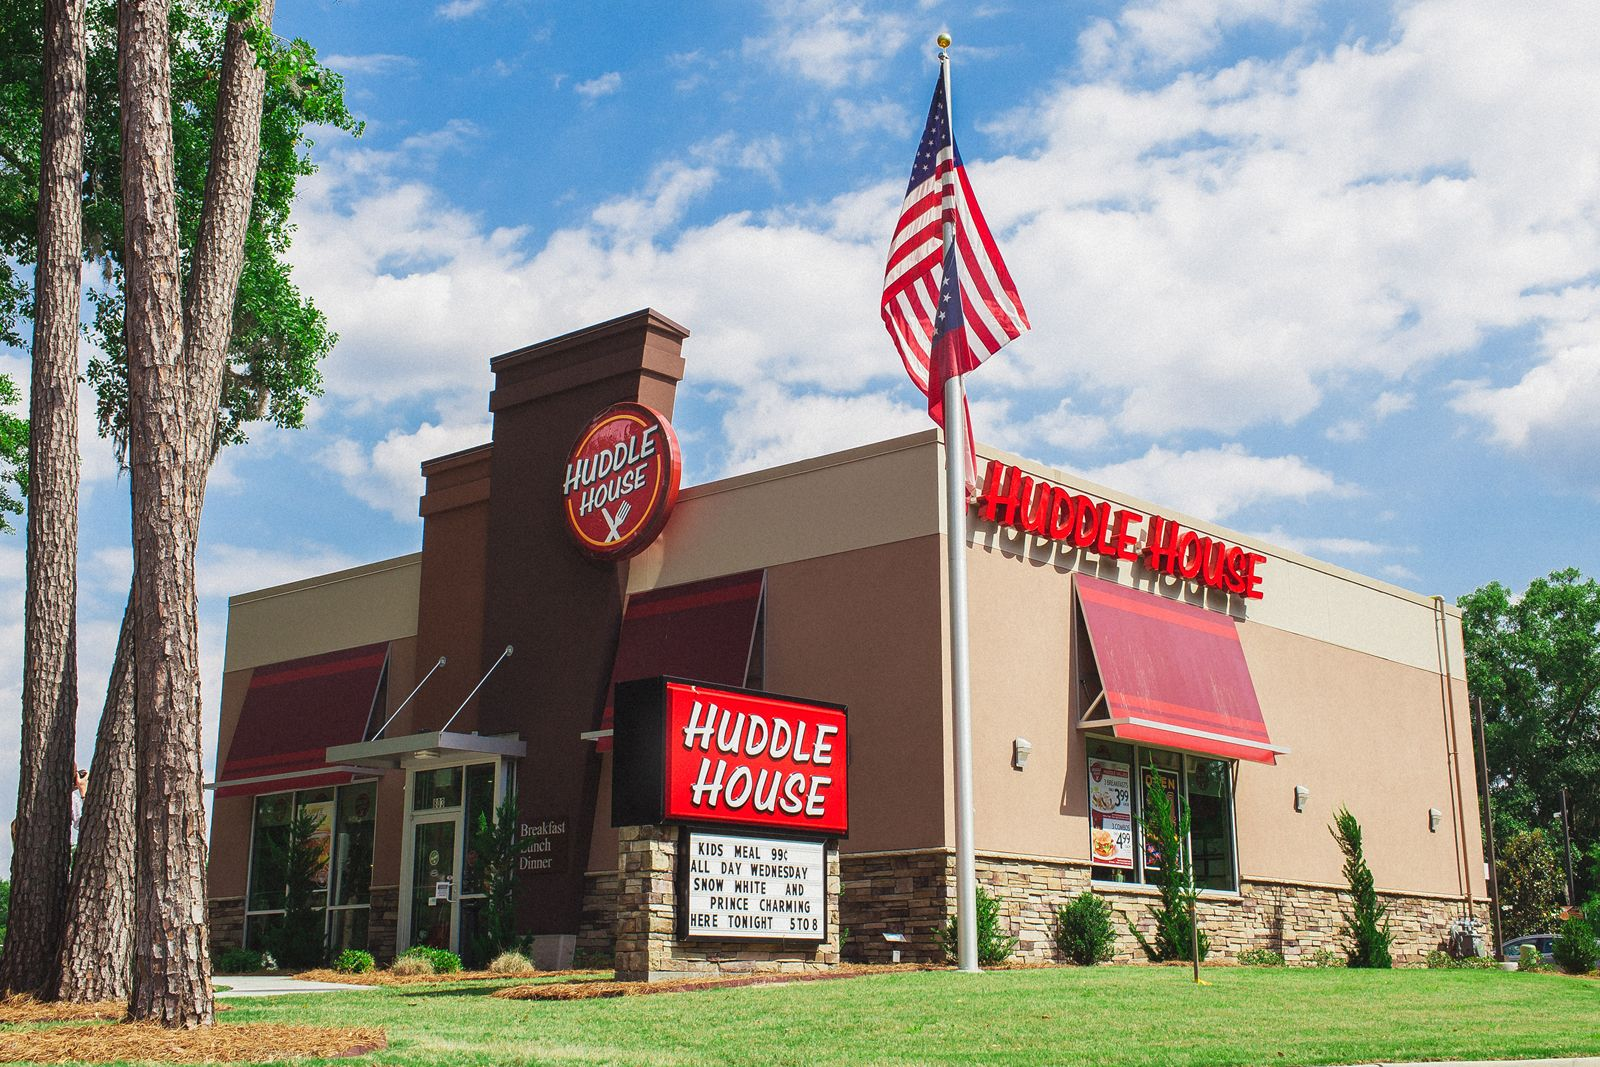 Huddle House Continues Strong Growth in Alabama State With Opening of 41st Restaurant